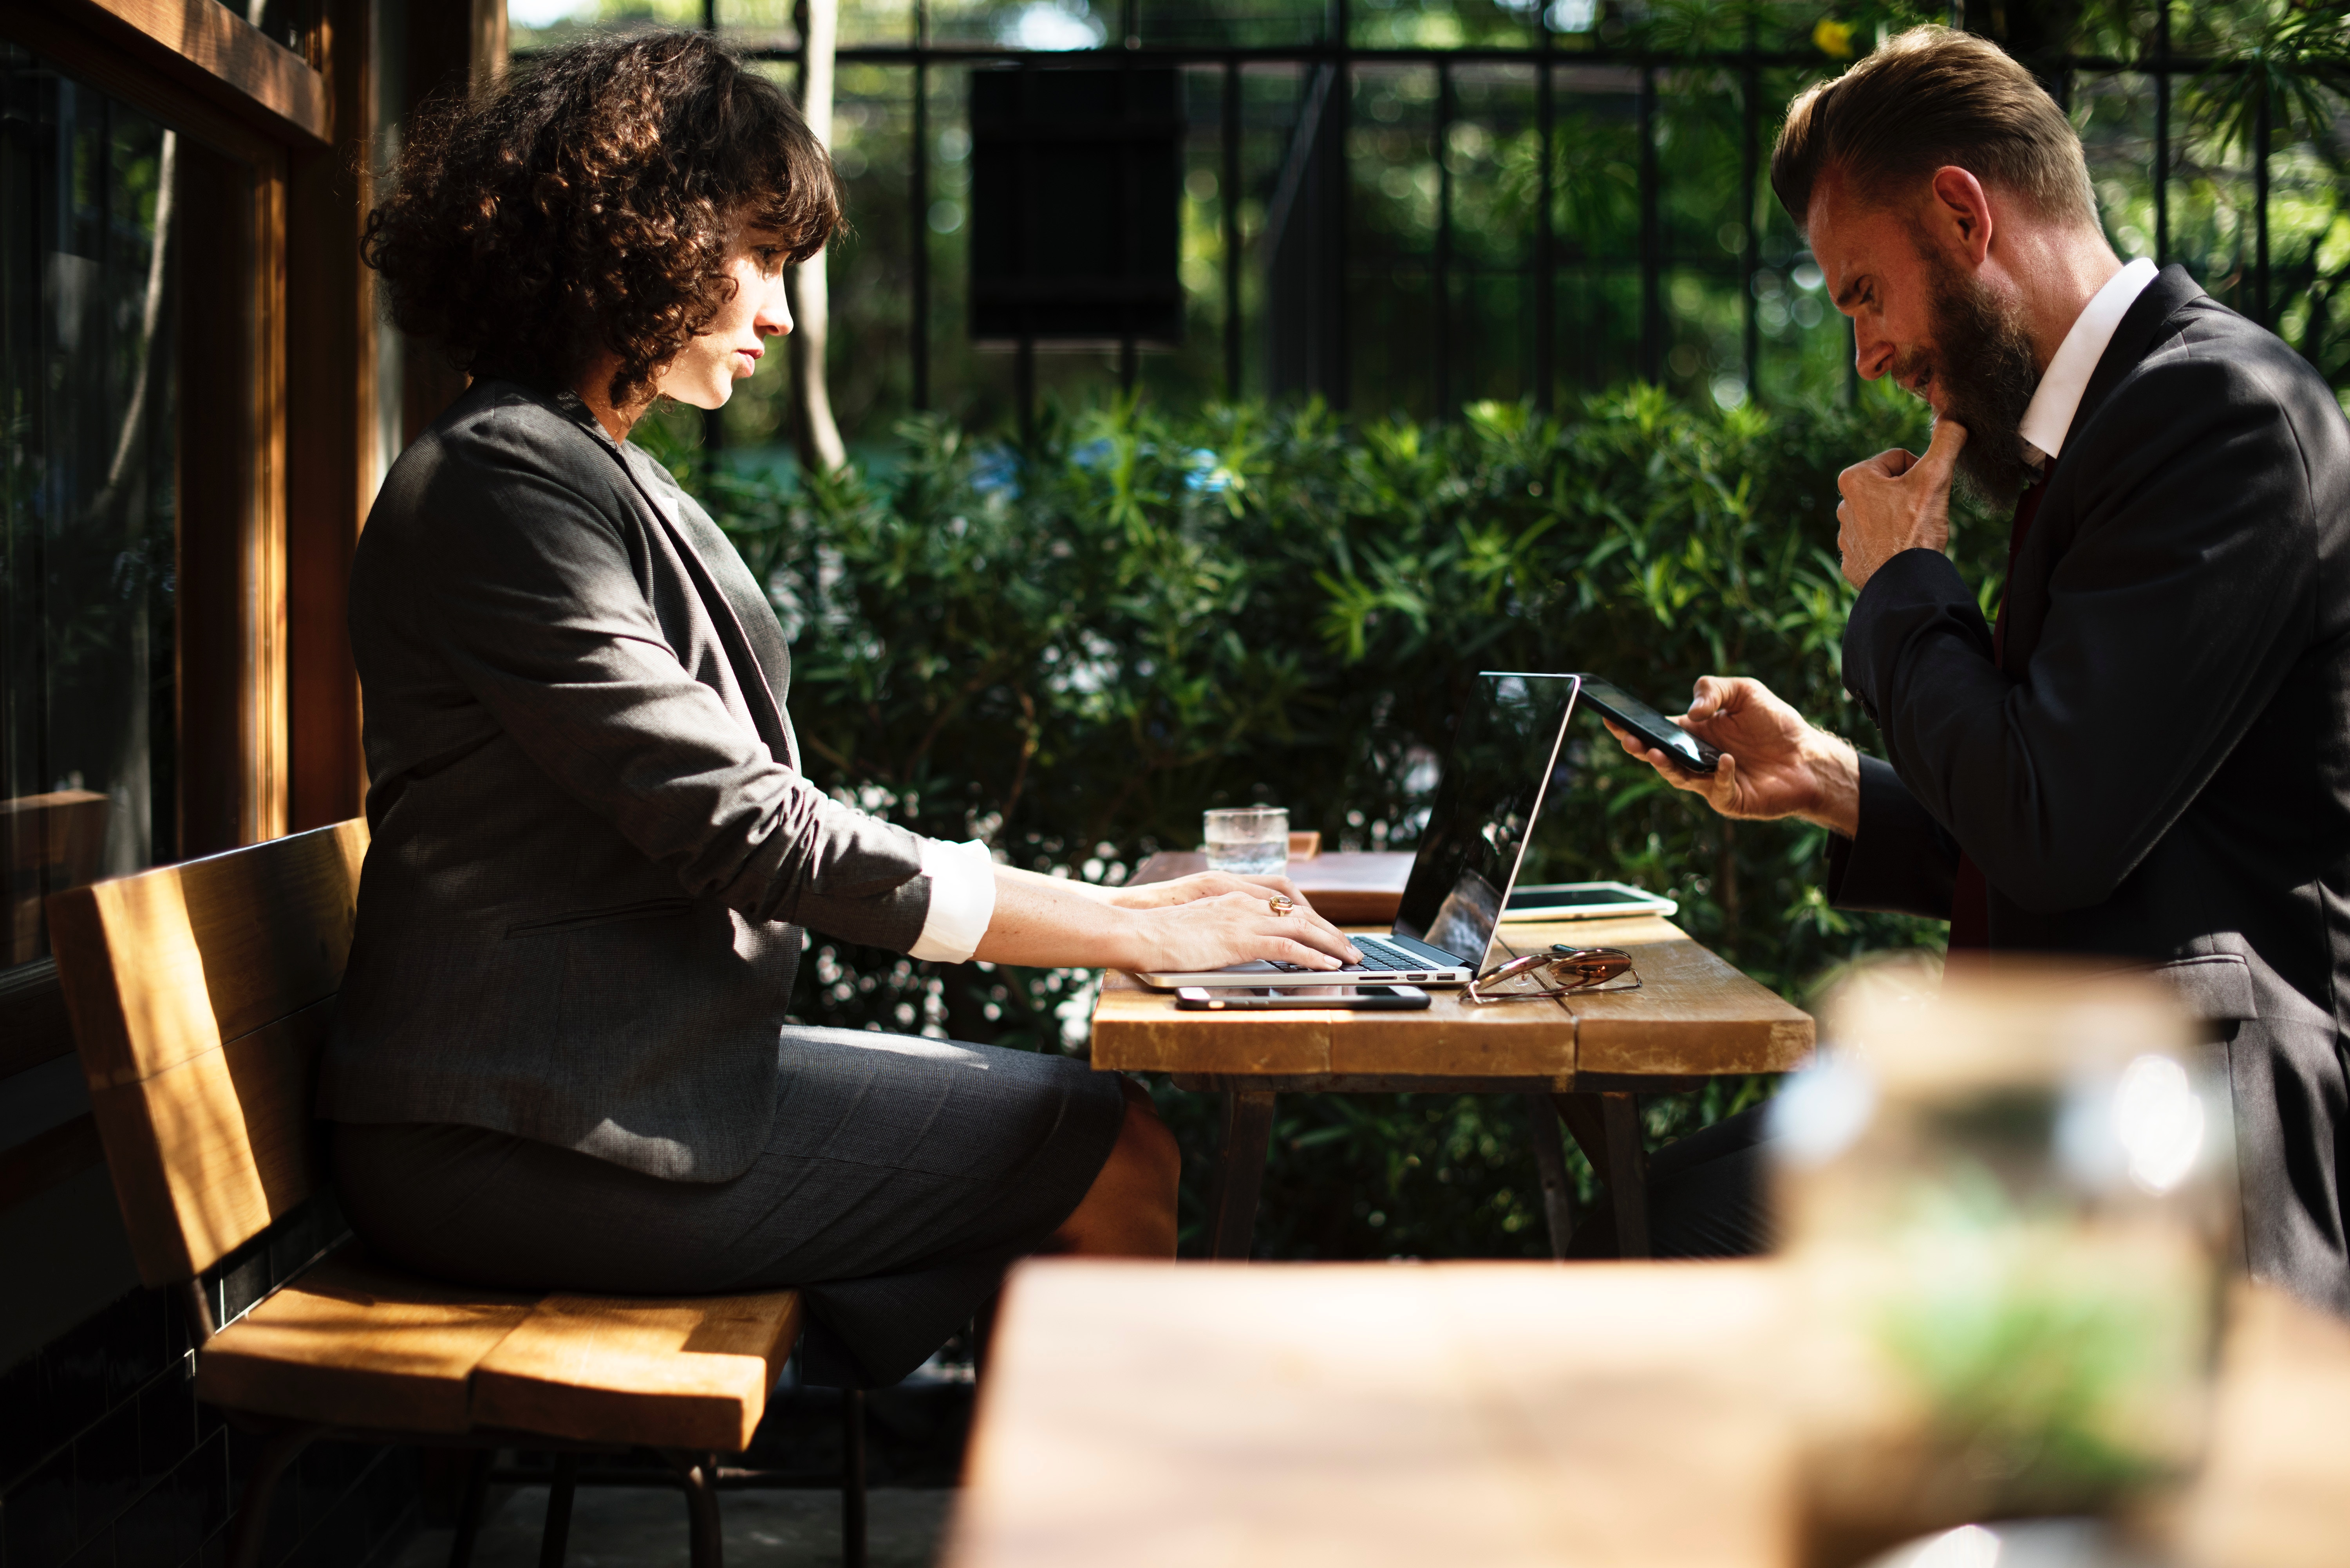 Improve Your Work Habits With These Tips